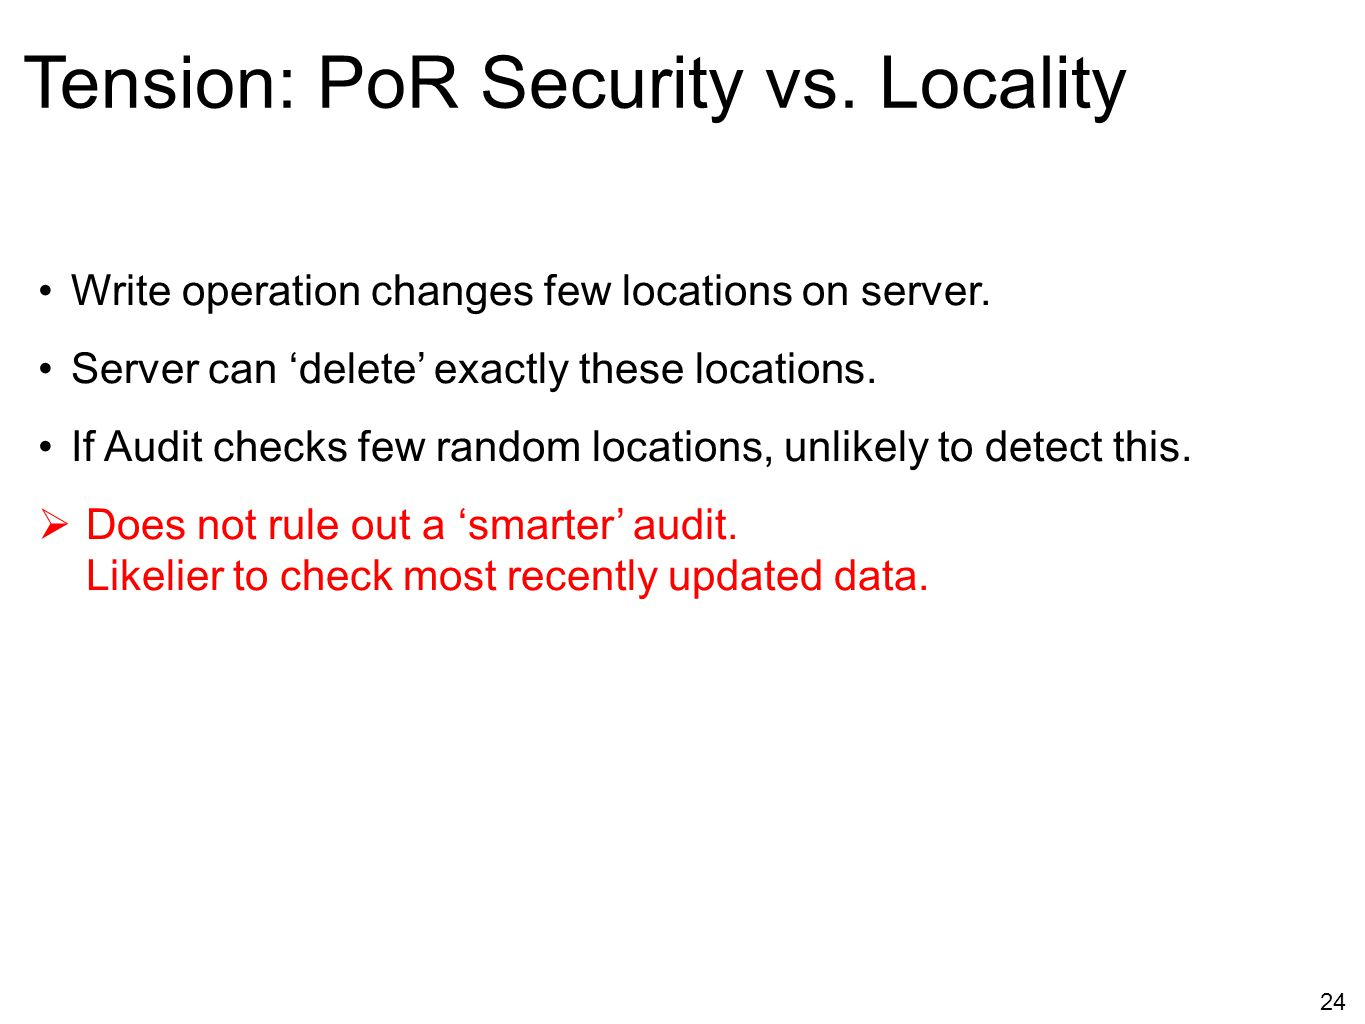 Tension: PoR Security vs. Locality